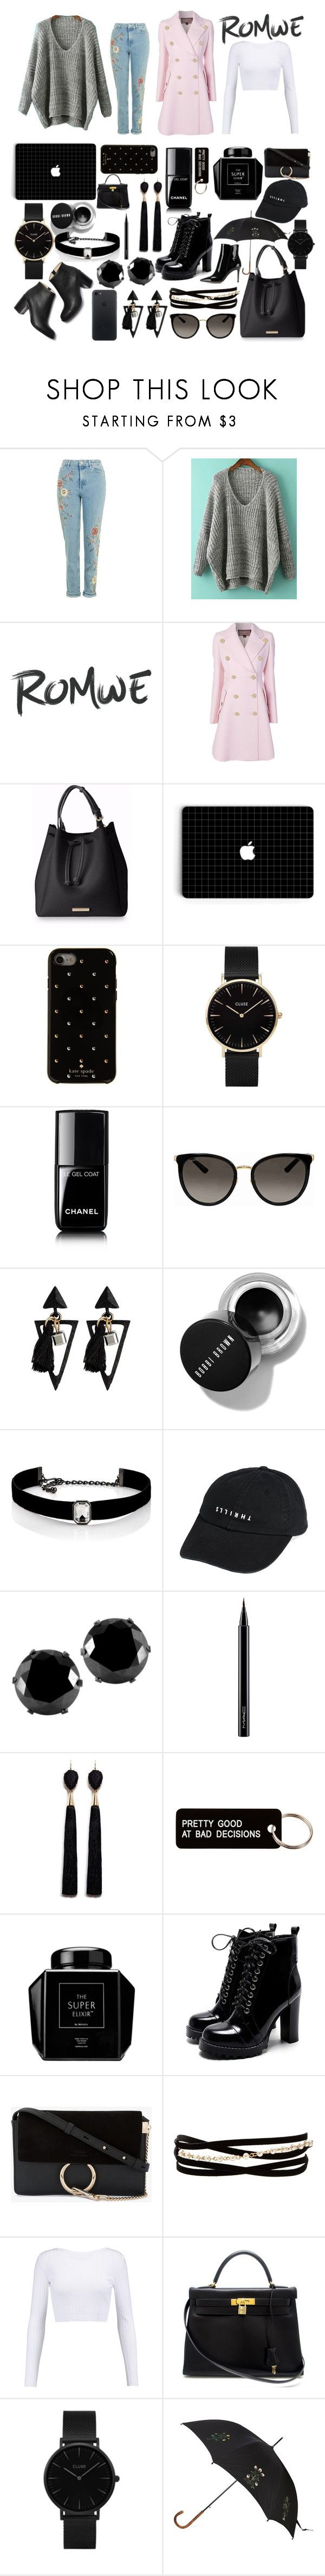 """""""Romwe"""" by xoxeloisexox ❤ liked on Polyvore featuring Giambattista Valli, Kate Spade, CLUSE, Chanel, Gucci, Kenneth Jay Lane, Thrills, West Coast Jewelry, MAC Cosmetics and Mignonne Gavigan"""